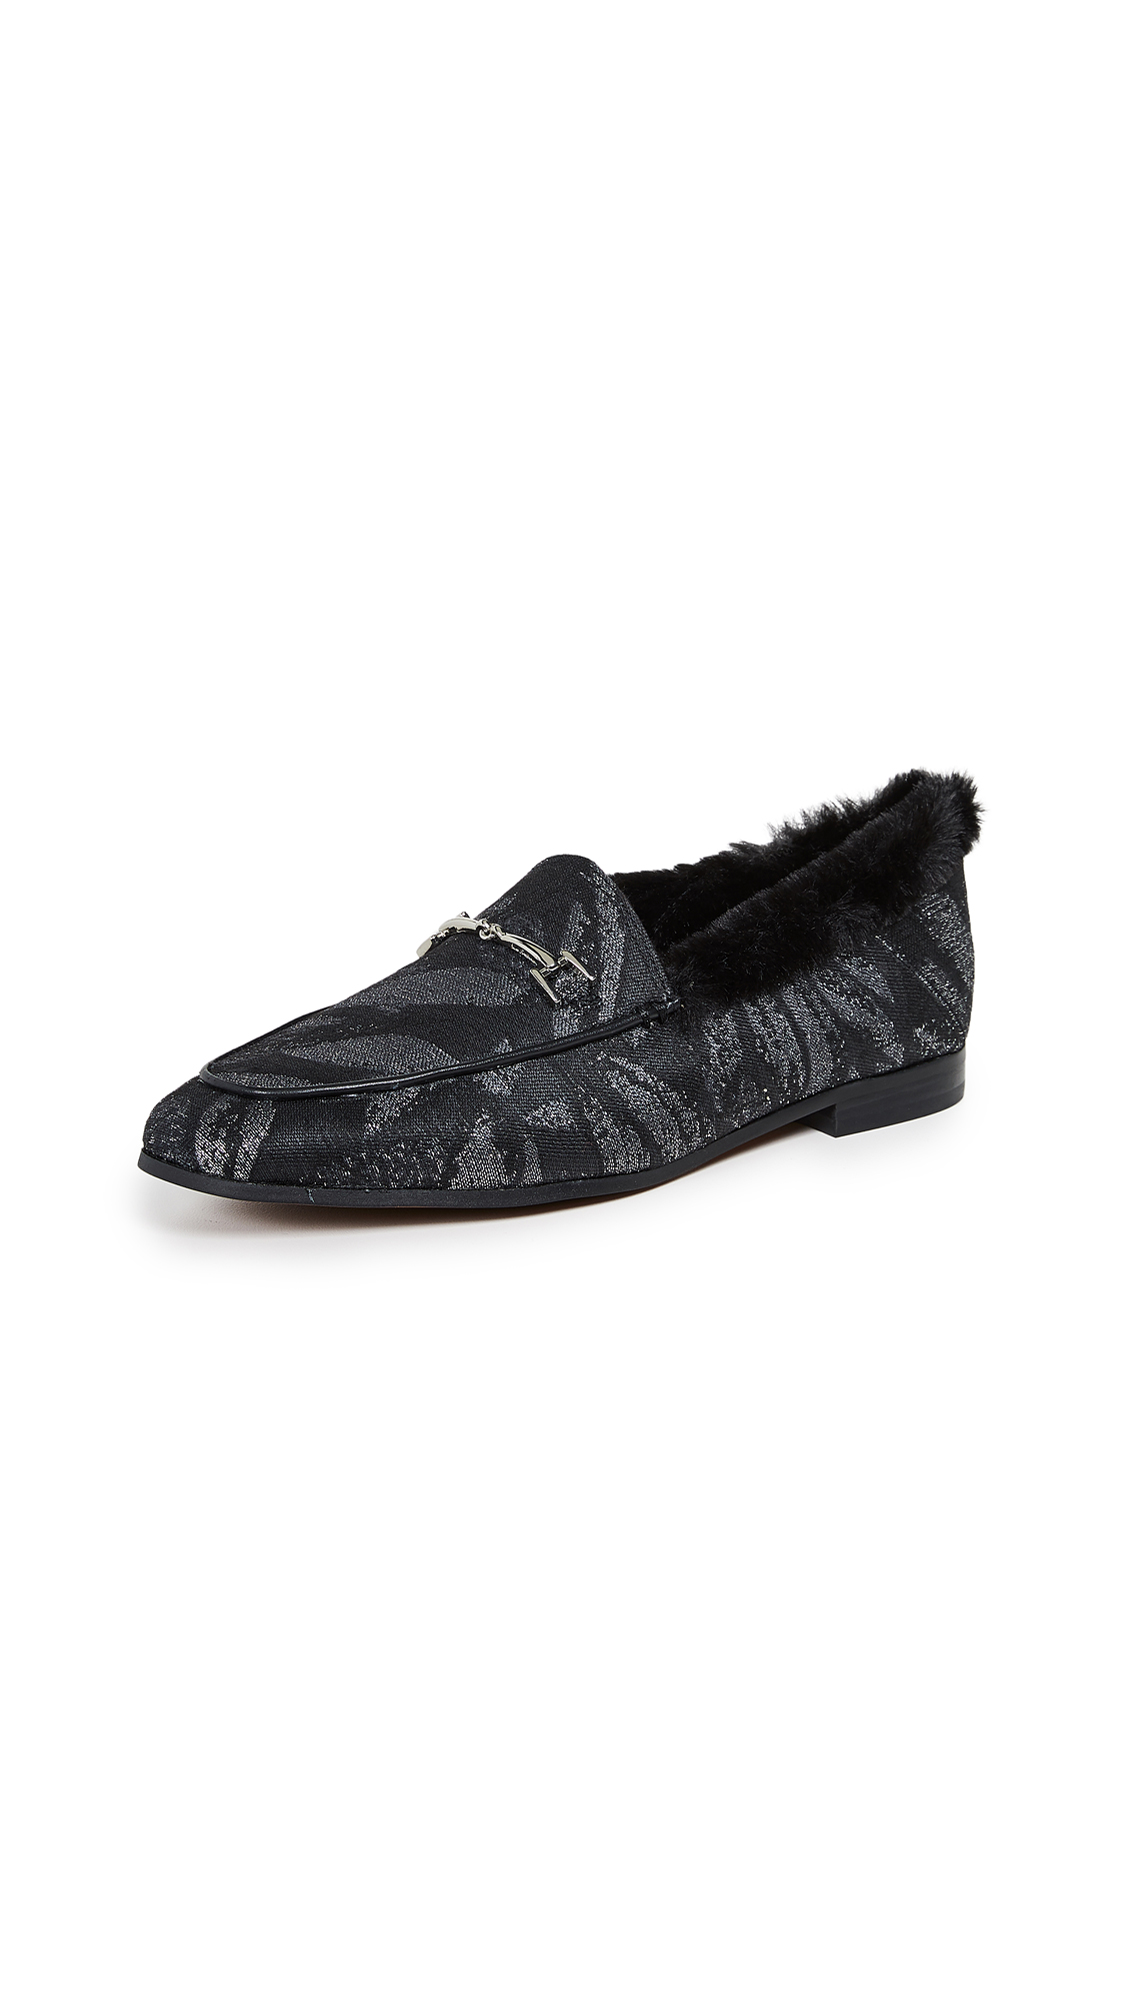 Sam Edelman Loraine Loafers - Silver Multi/Black